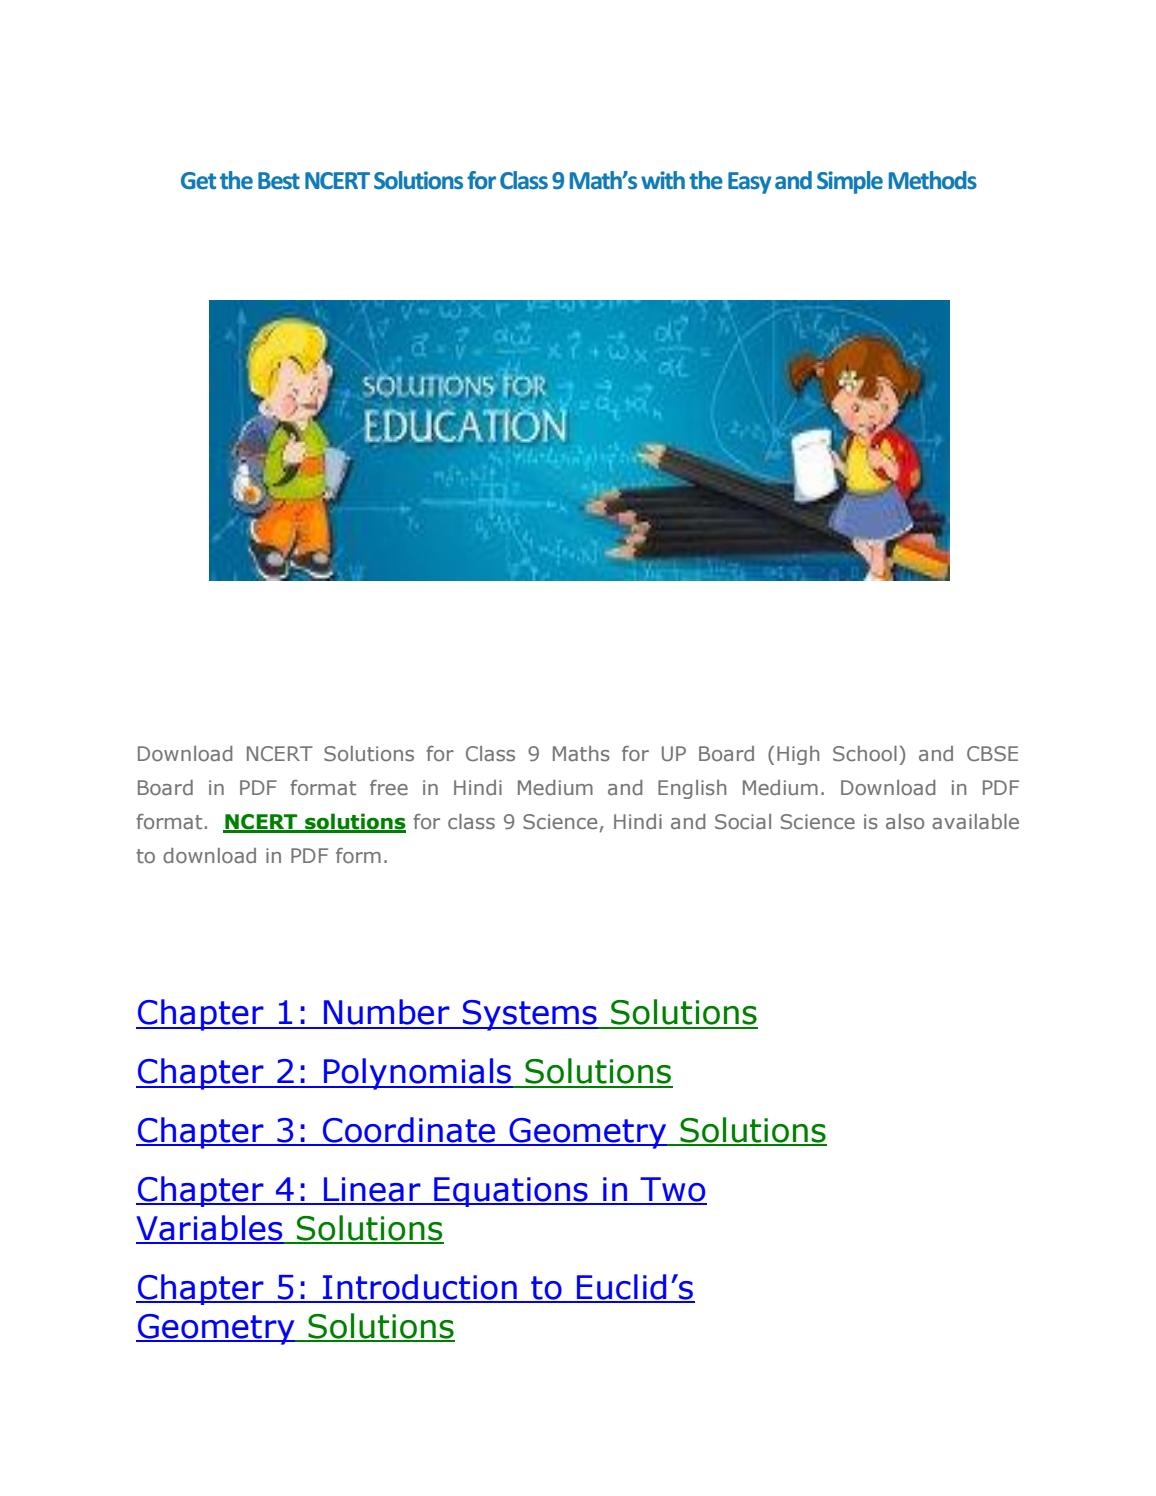 Get the Best NCERT Solutions for Class 9 Math's with the